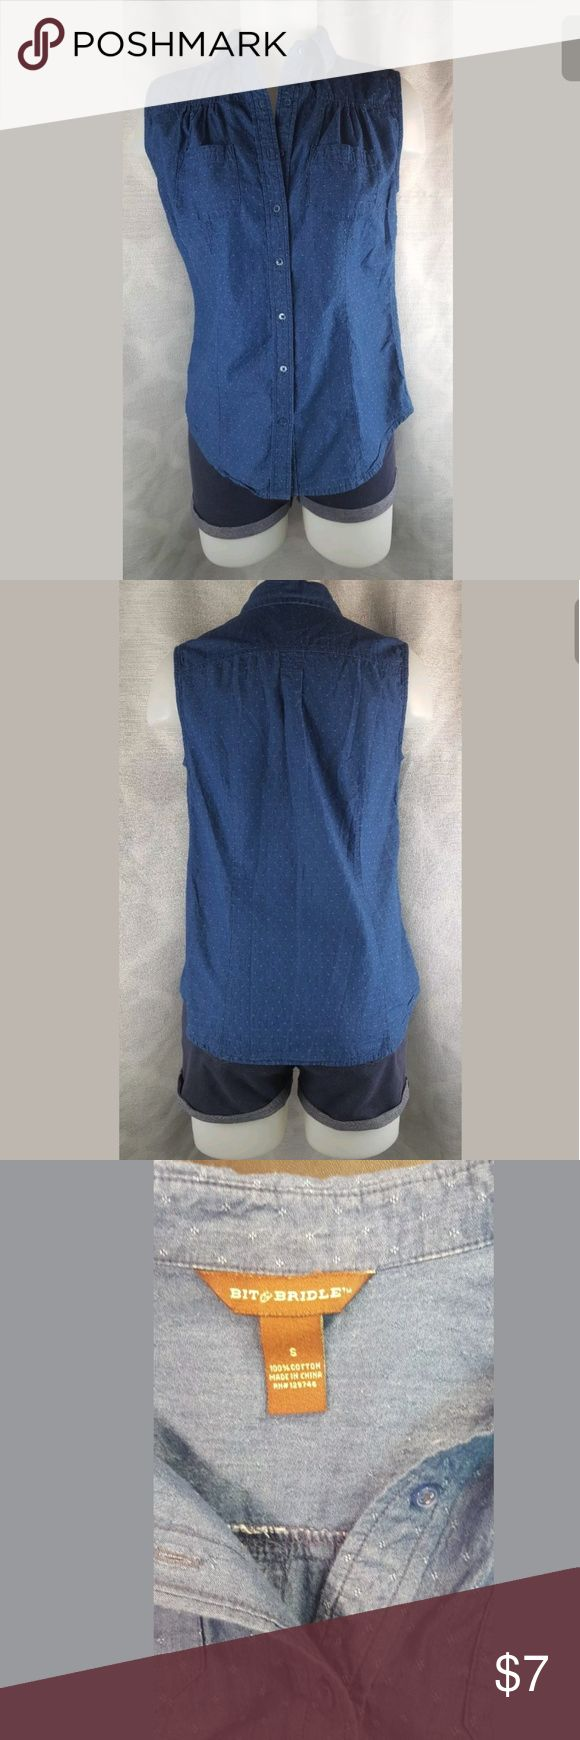 """Small sleeveless denim shirt button front By Bit & Bridle...2 front pockets and polka dot design print.  Measures 18"""" across the bust armpit to armpit.  Shirred design ontop Bit & Bridle Tops Button Down Shirts"""